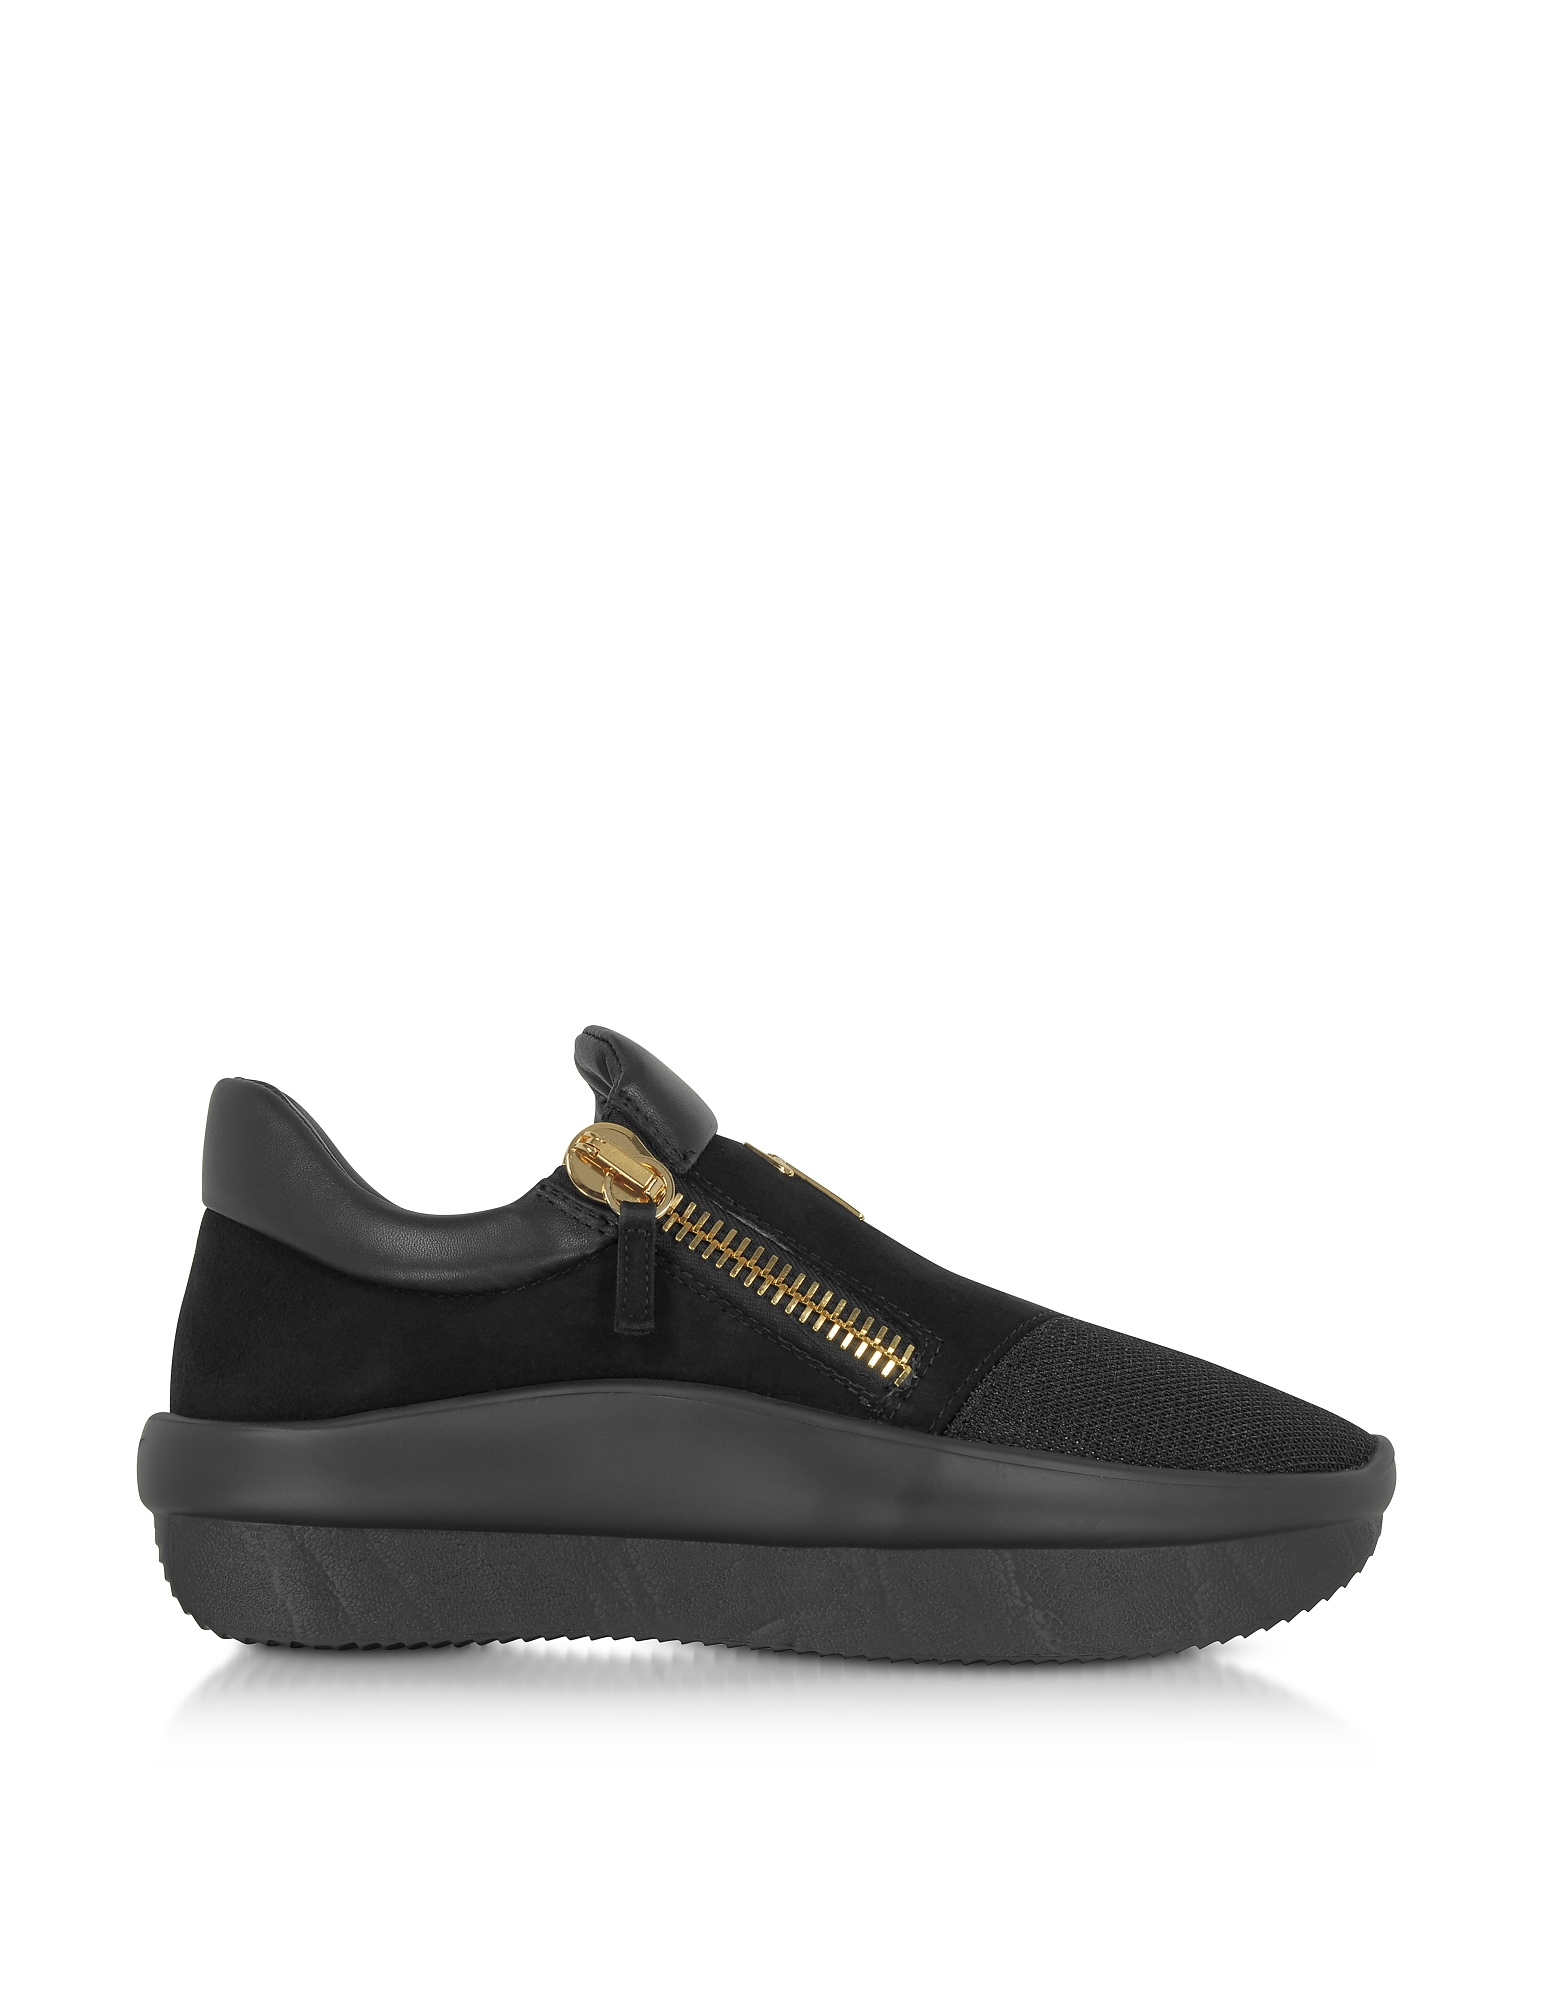 Giuseppe Zanotti Shoes, Black Perforated Fabric and Suede Low Top Men's Sneakers